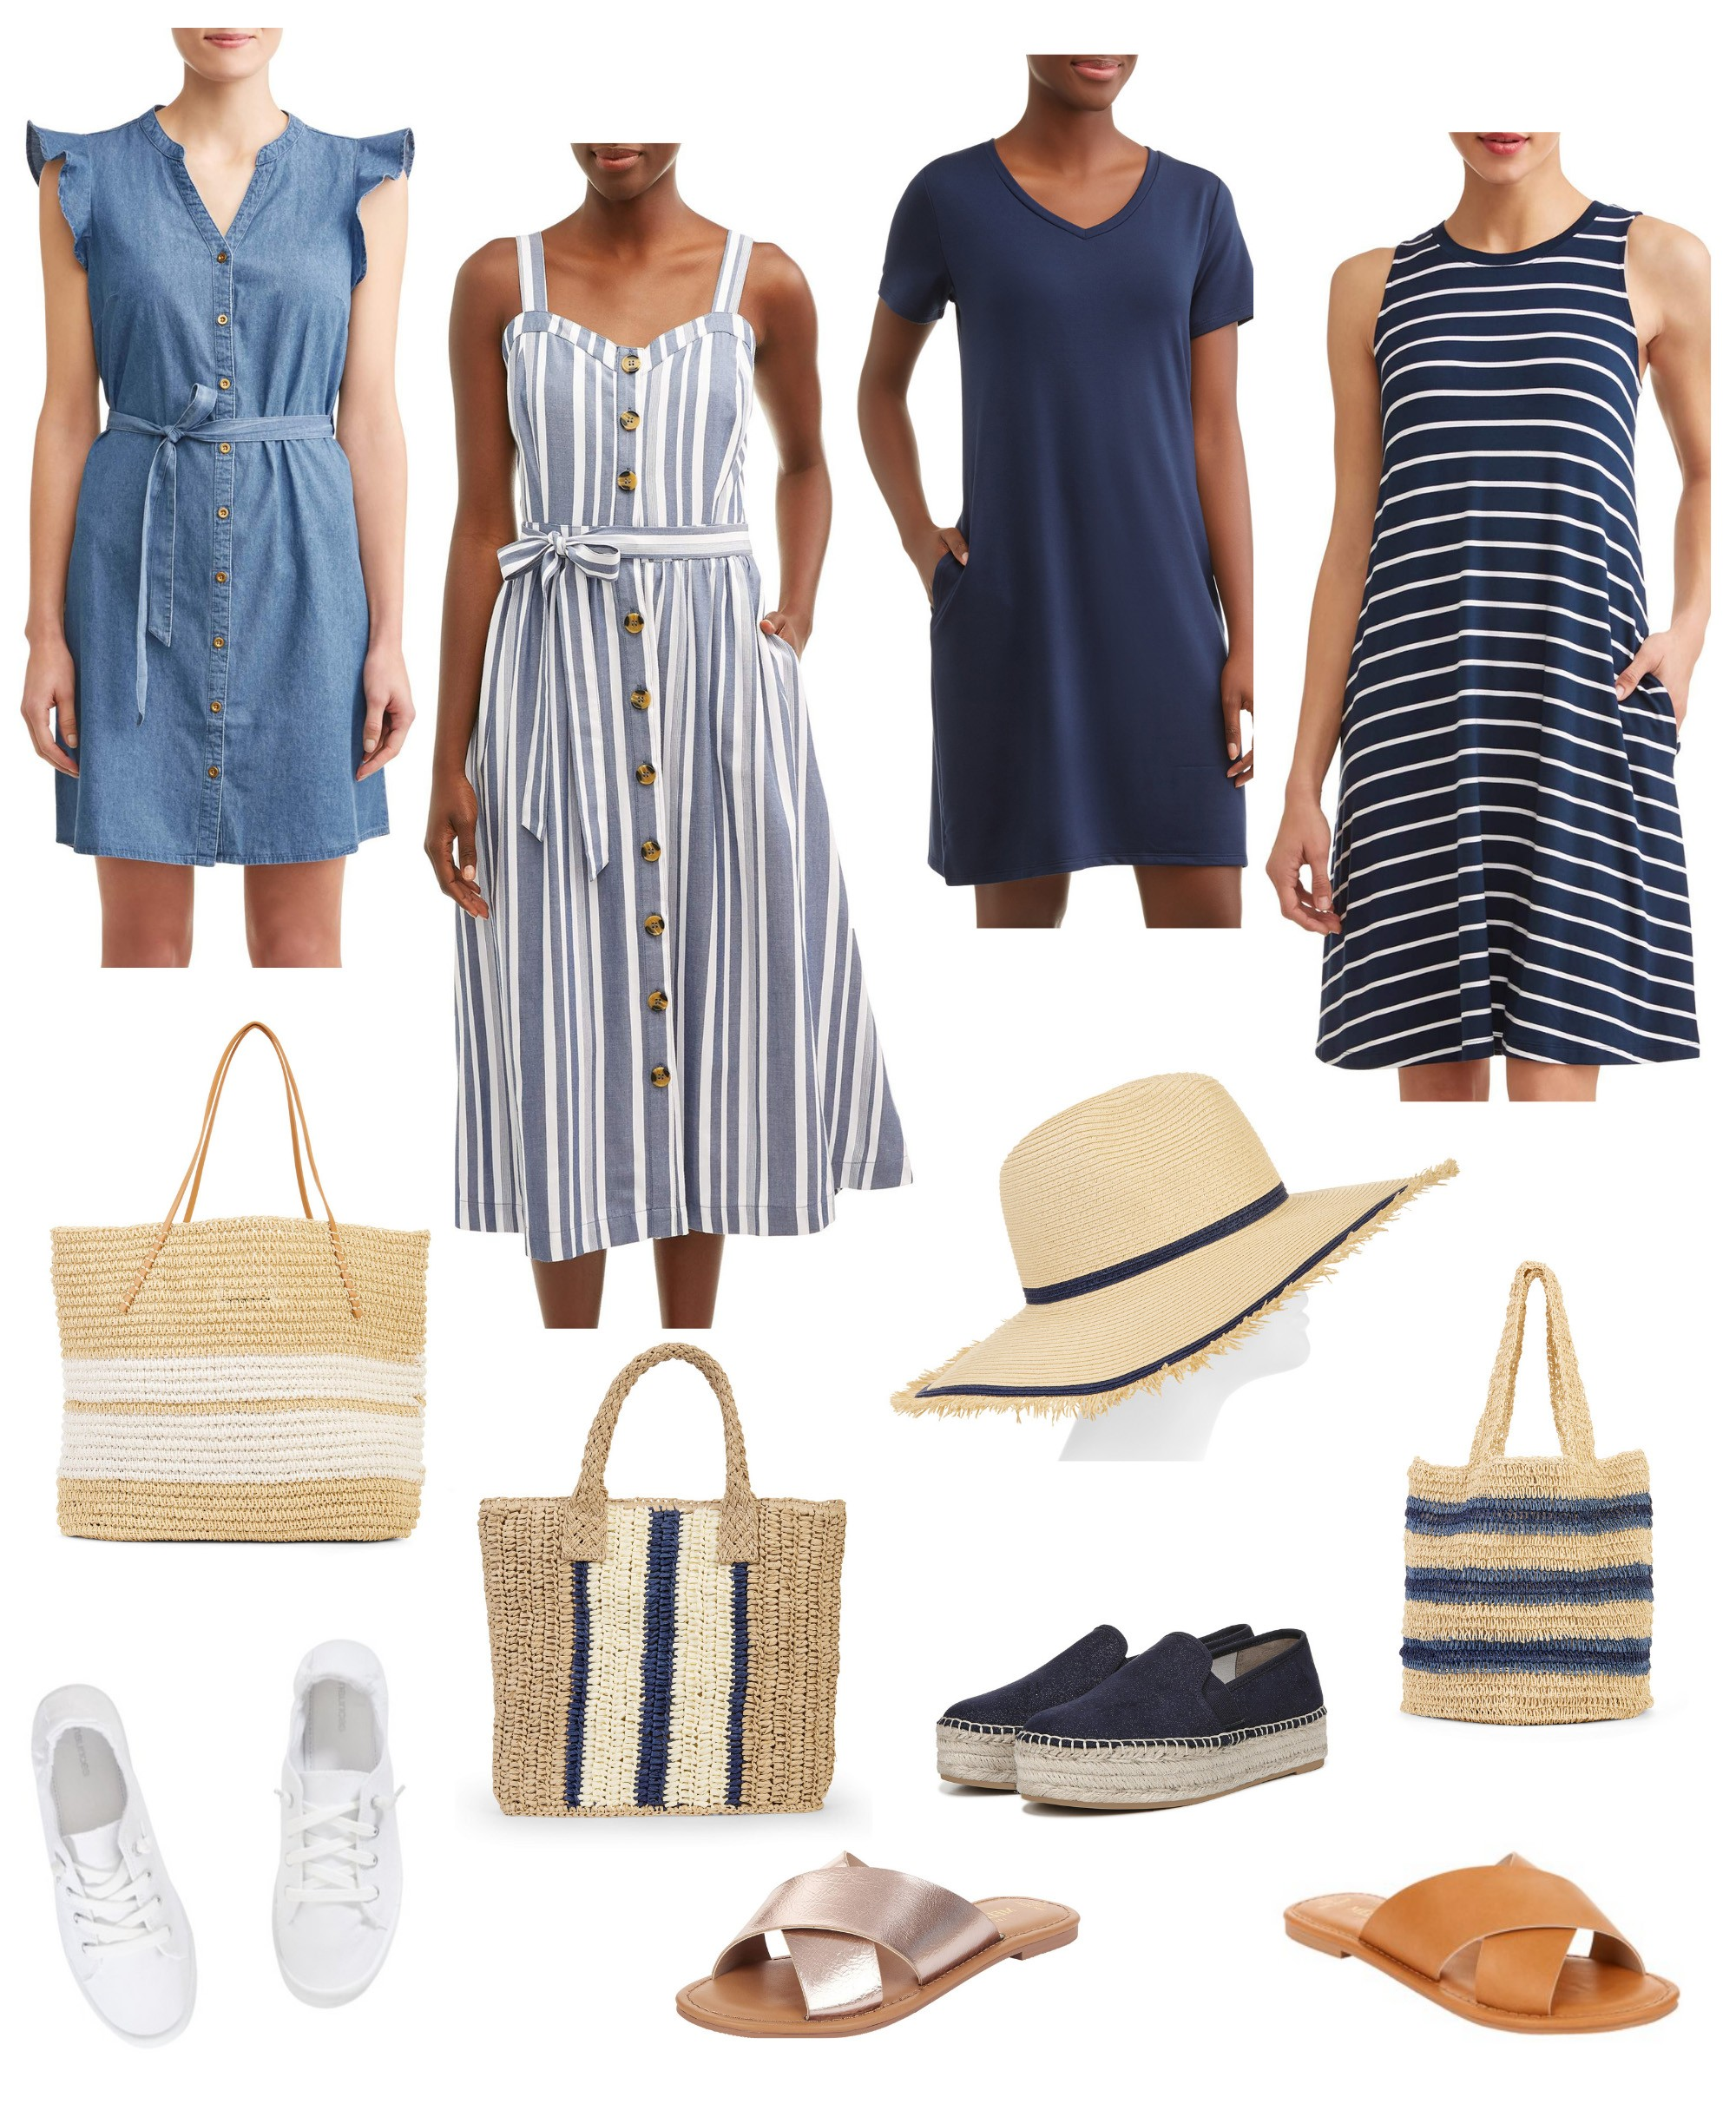 3abb4467f Y'all have been loving the roundups of budget-friendly outfits from Walmart  so I am excited to share a few more of my favorite summer picks today!